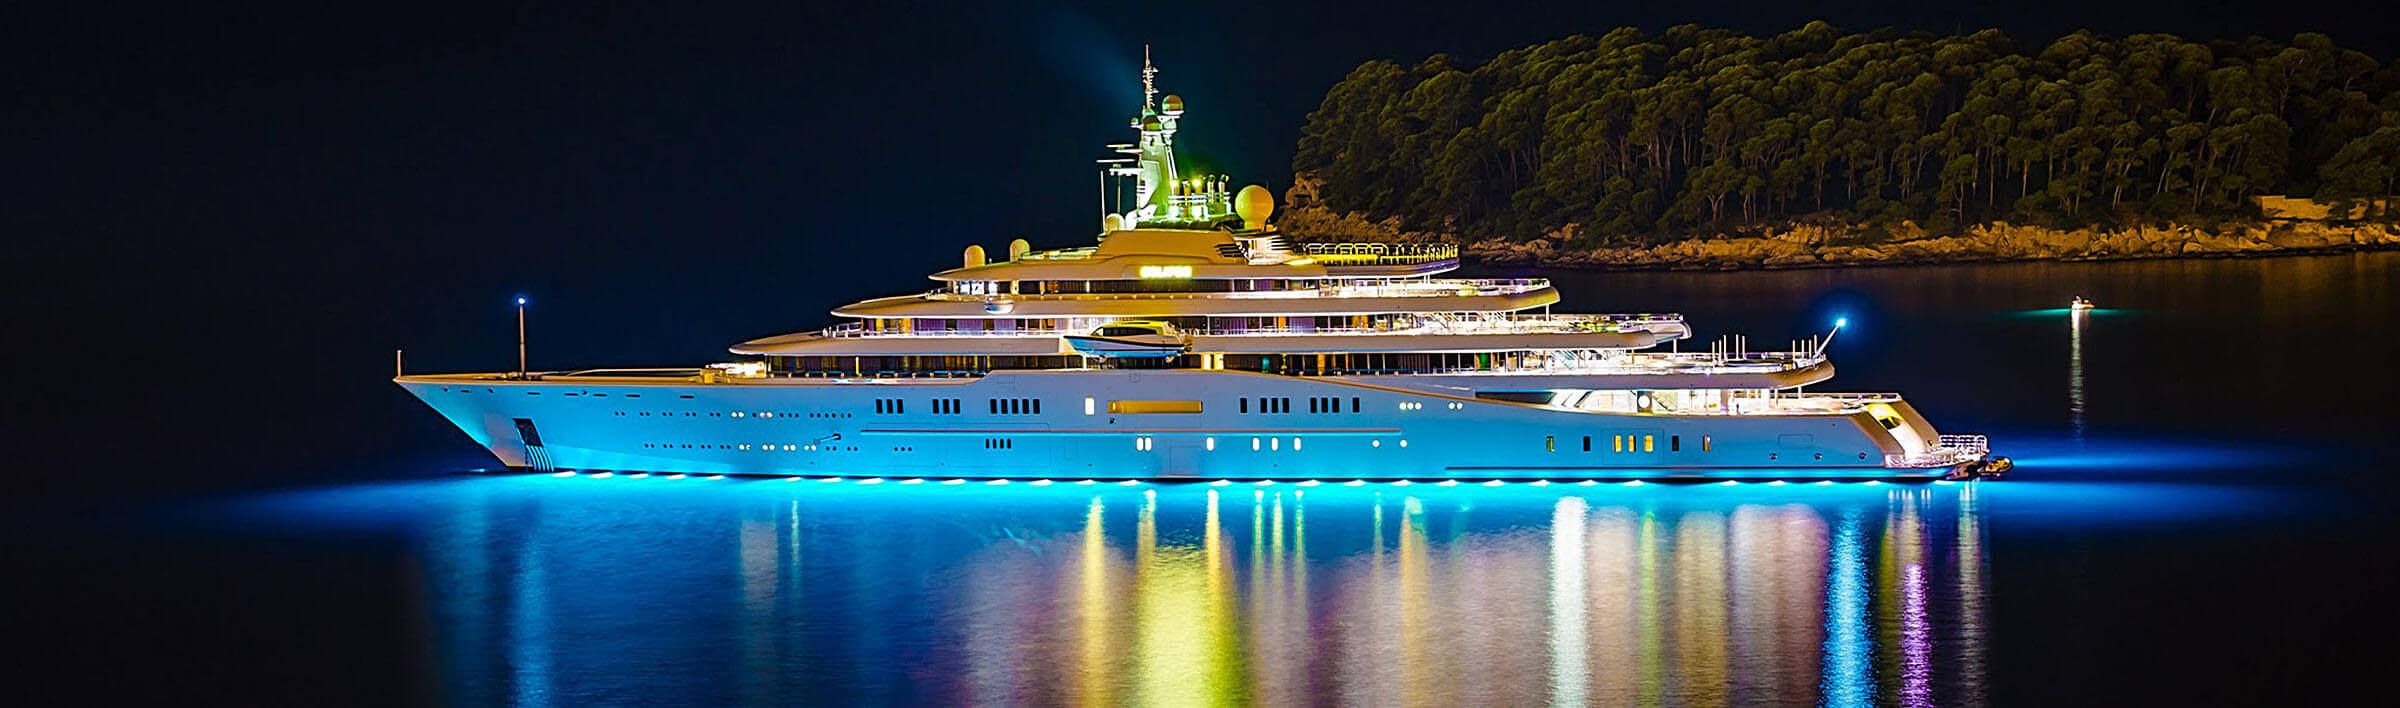 Private yacht Eclipse at sea